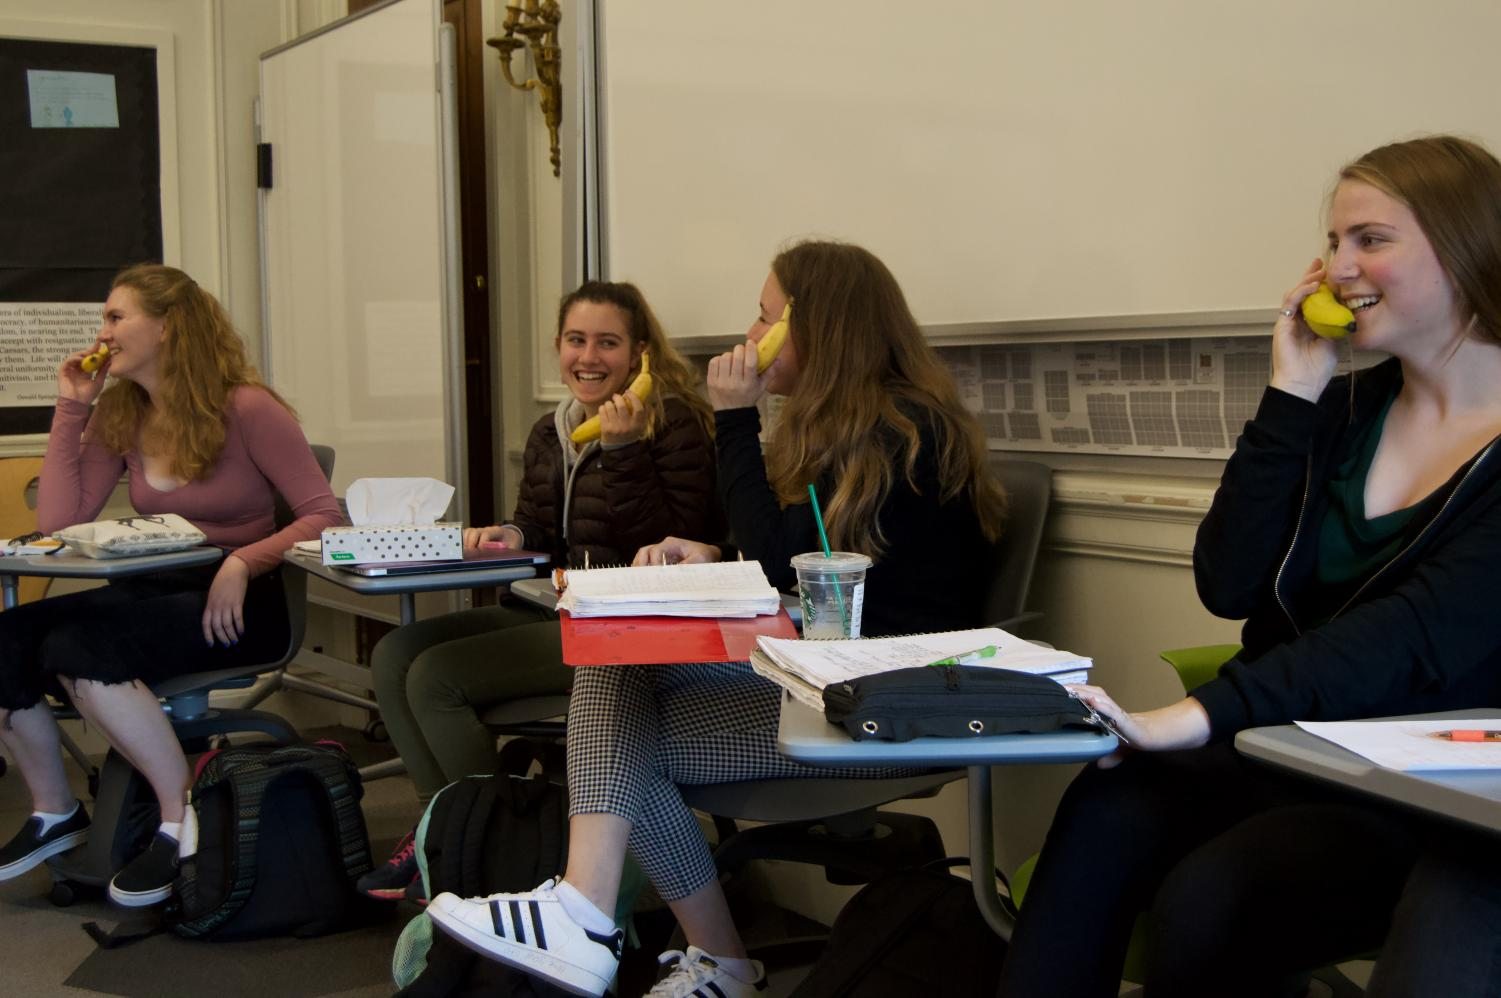 Sophomores 'speak' into their banana 'phones' as part of a prank on History teacher Michael Stafford organized by English teacher Angelica Allen. The students obtained their bananas before class began to be prepared for the prank.